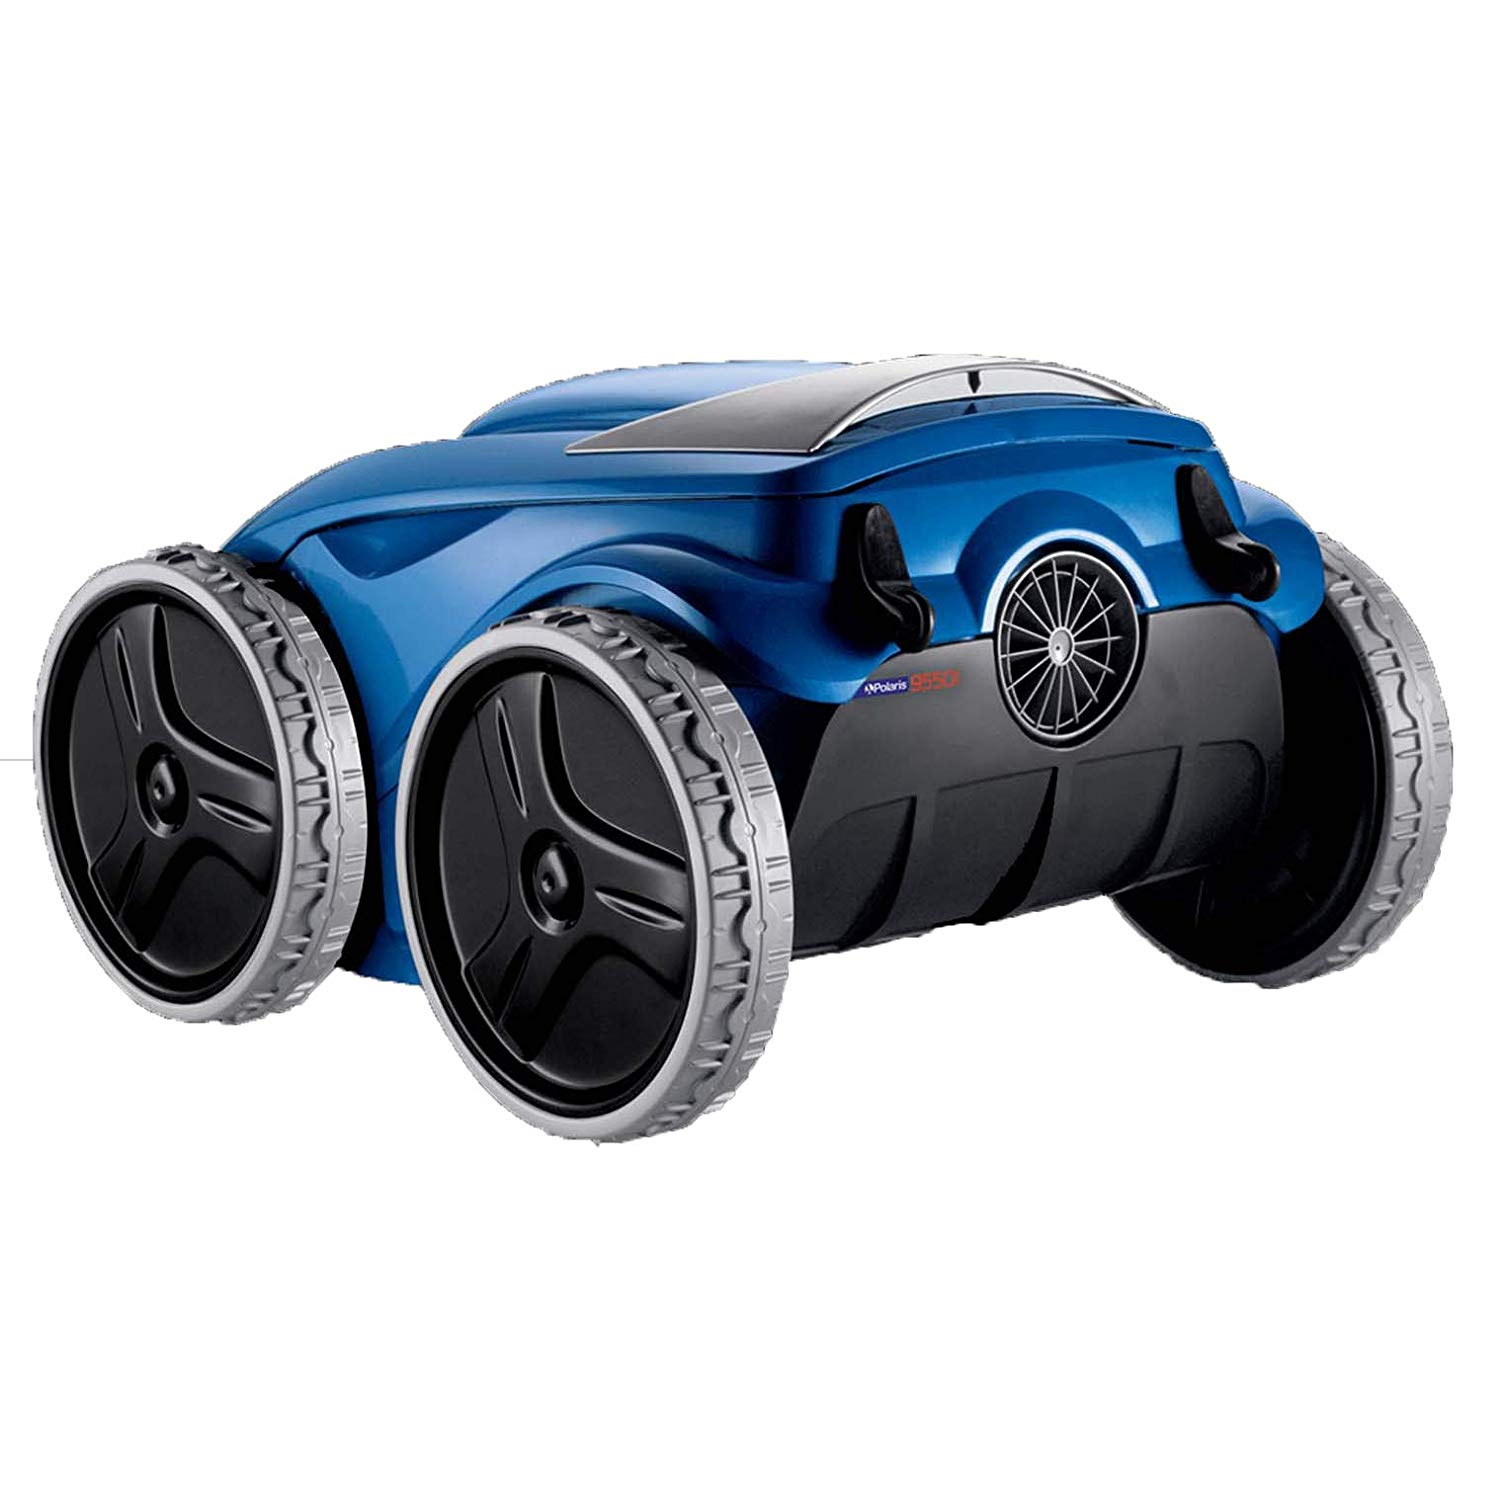 Polaris F9450 Sport Robotic In-Ground Swimming Pool Cleaner Vacuum